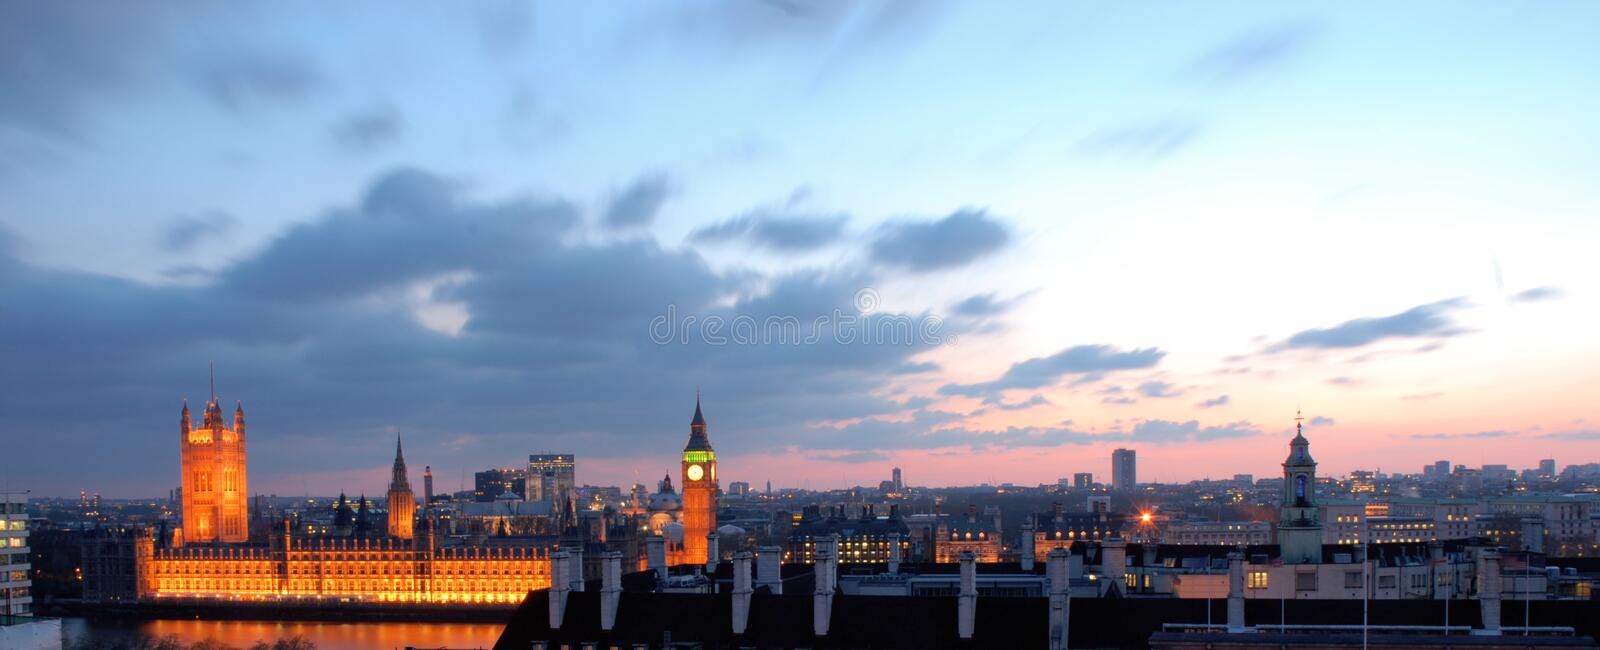 Skyline de Londres no crepúsculo foto de stock royalty free